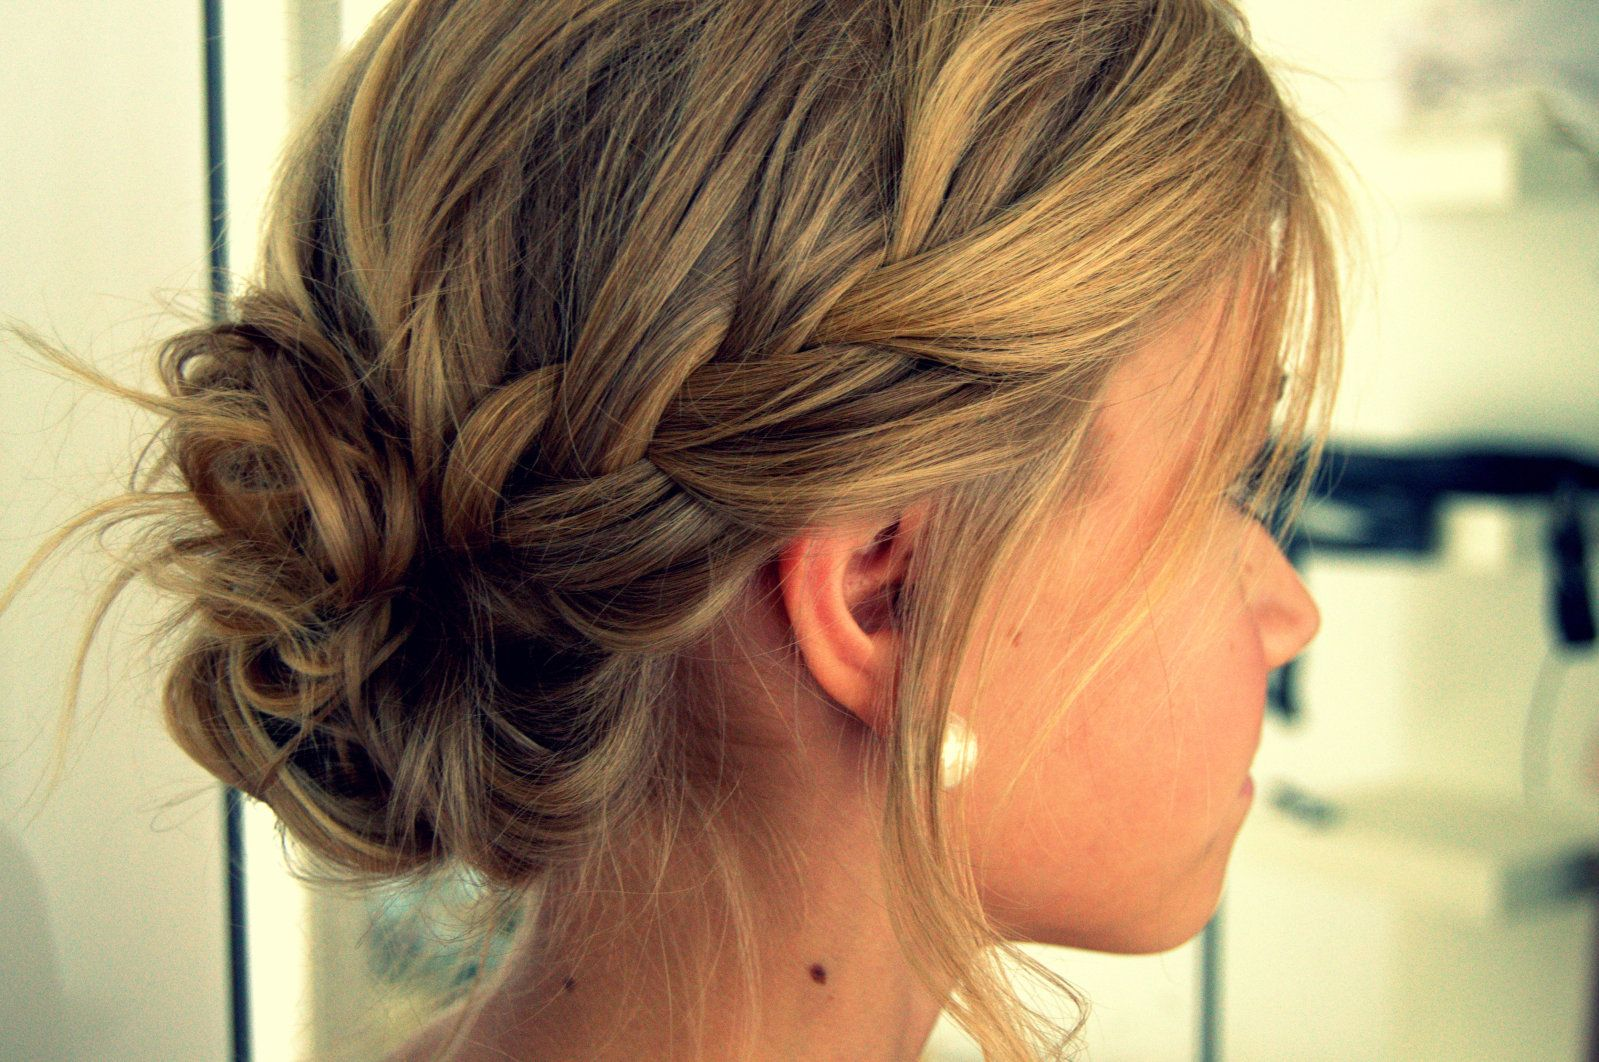 Loose Side Braid Into Messy Bun Hair Styles Short Hair Updo Hair Beauty